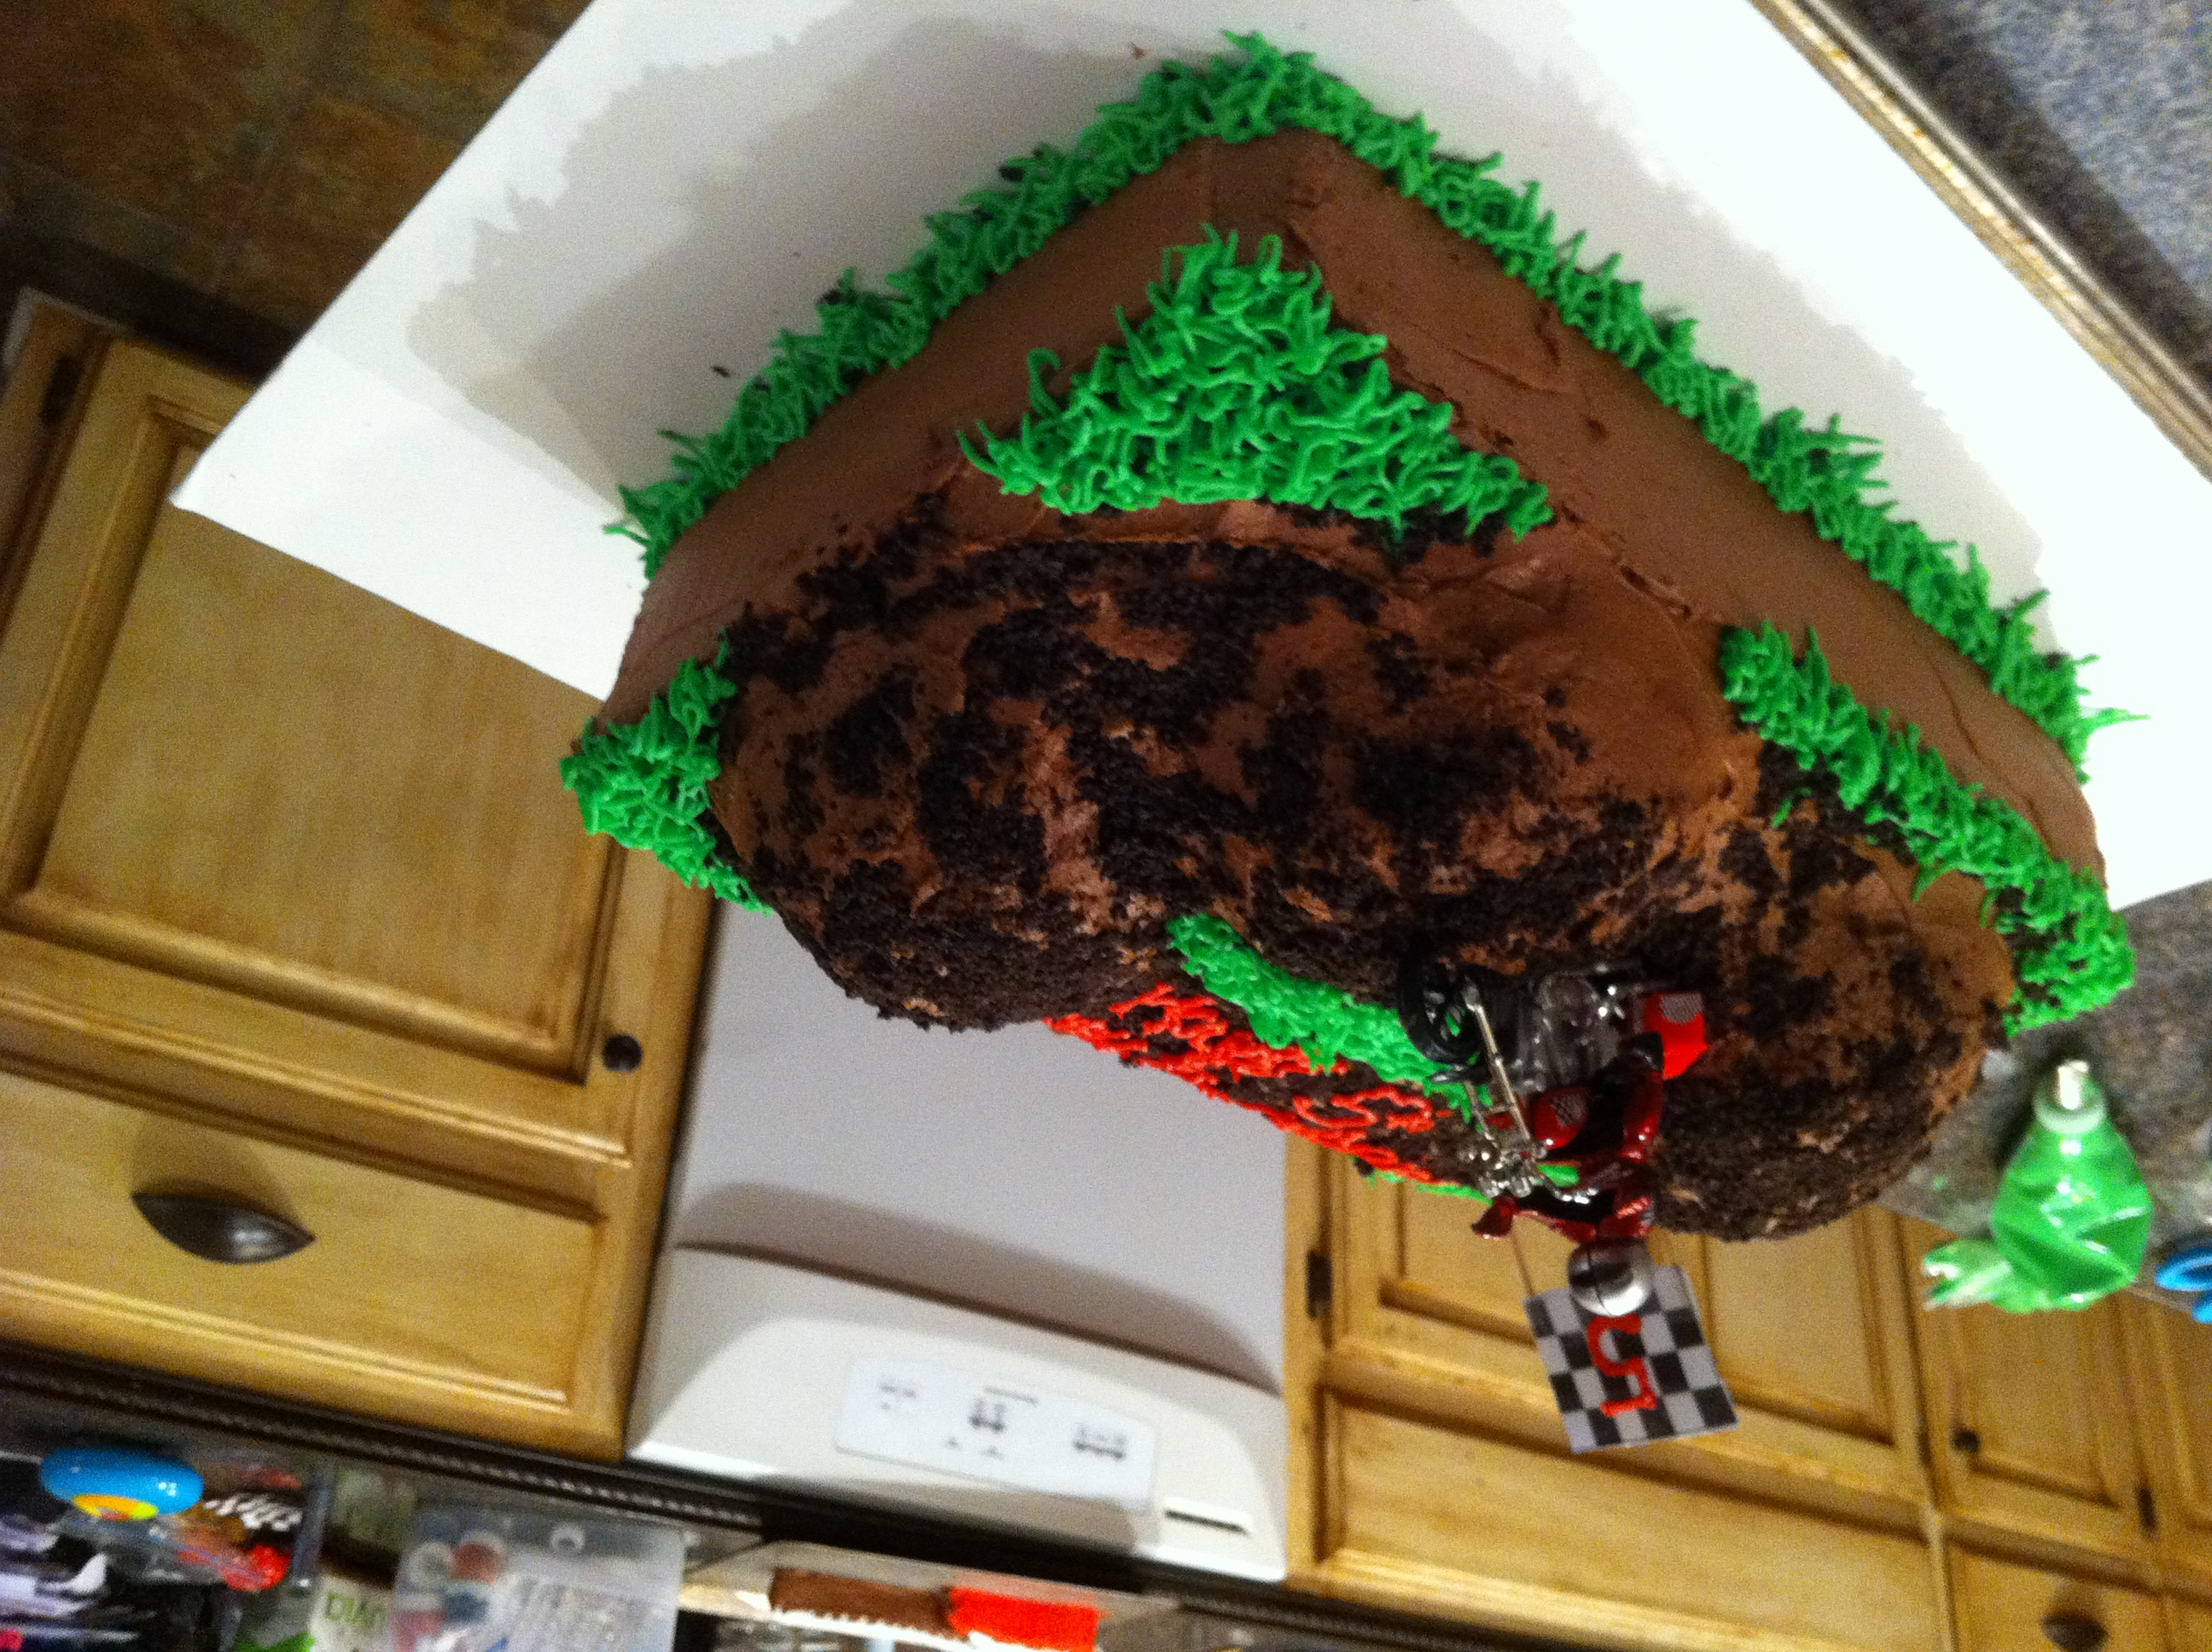 how to rotate a video iphone back of dirt bike cake flickr photo 5292